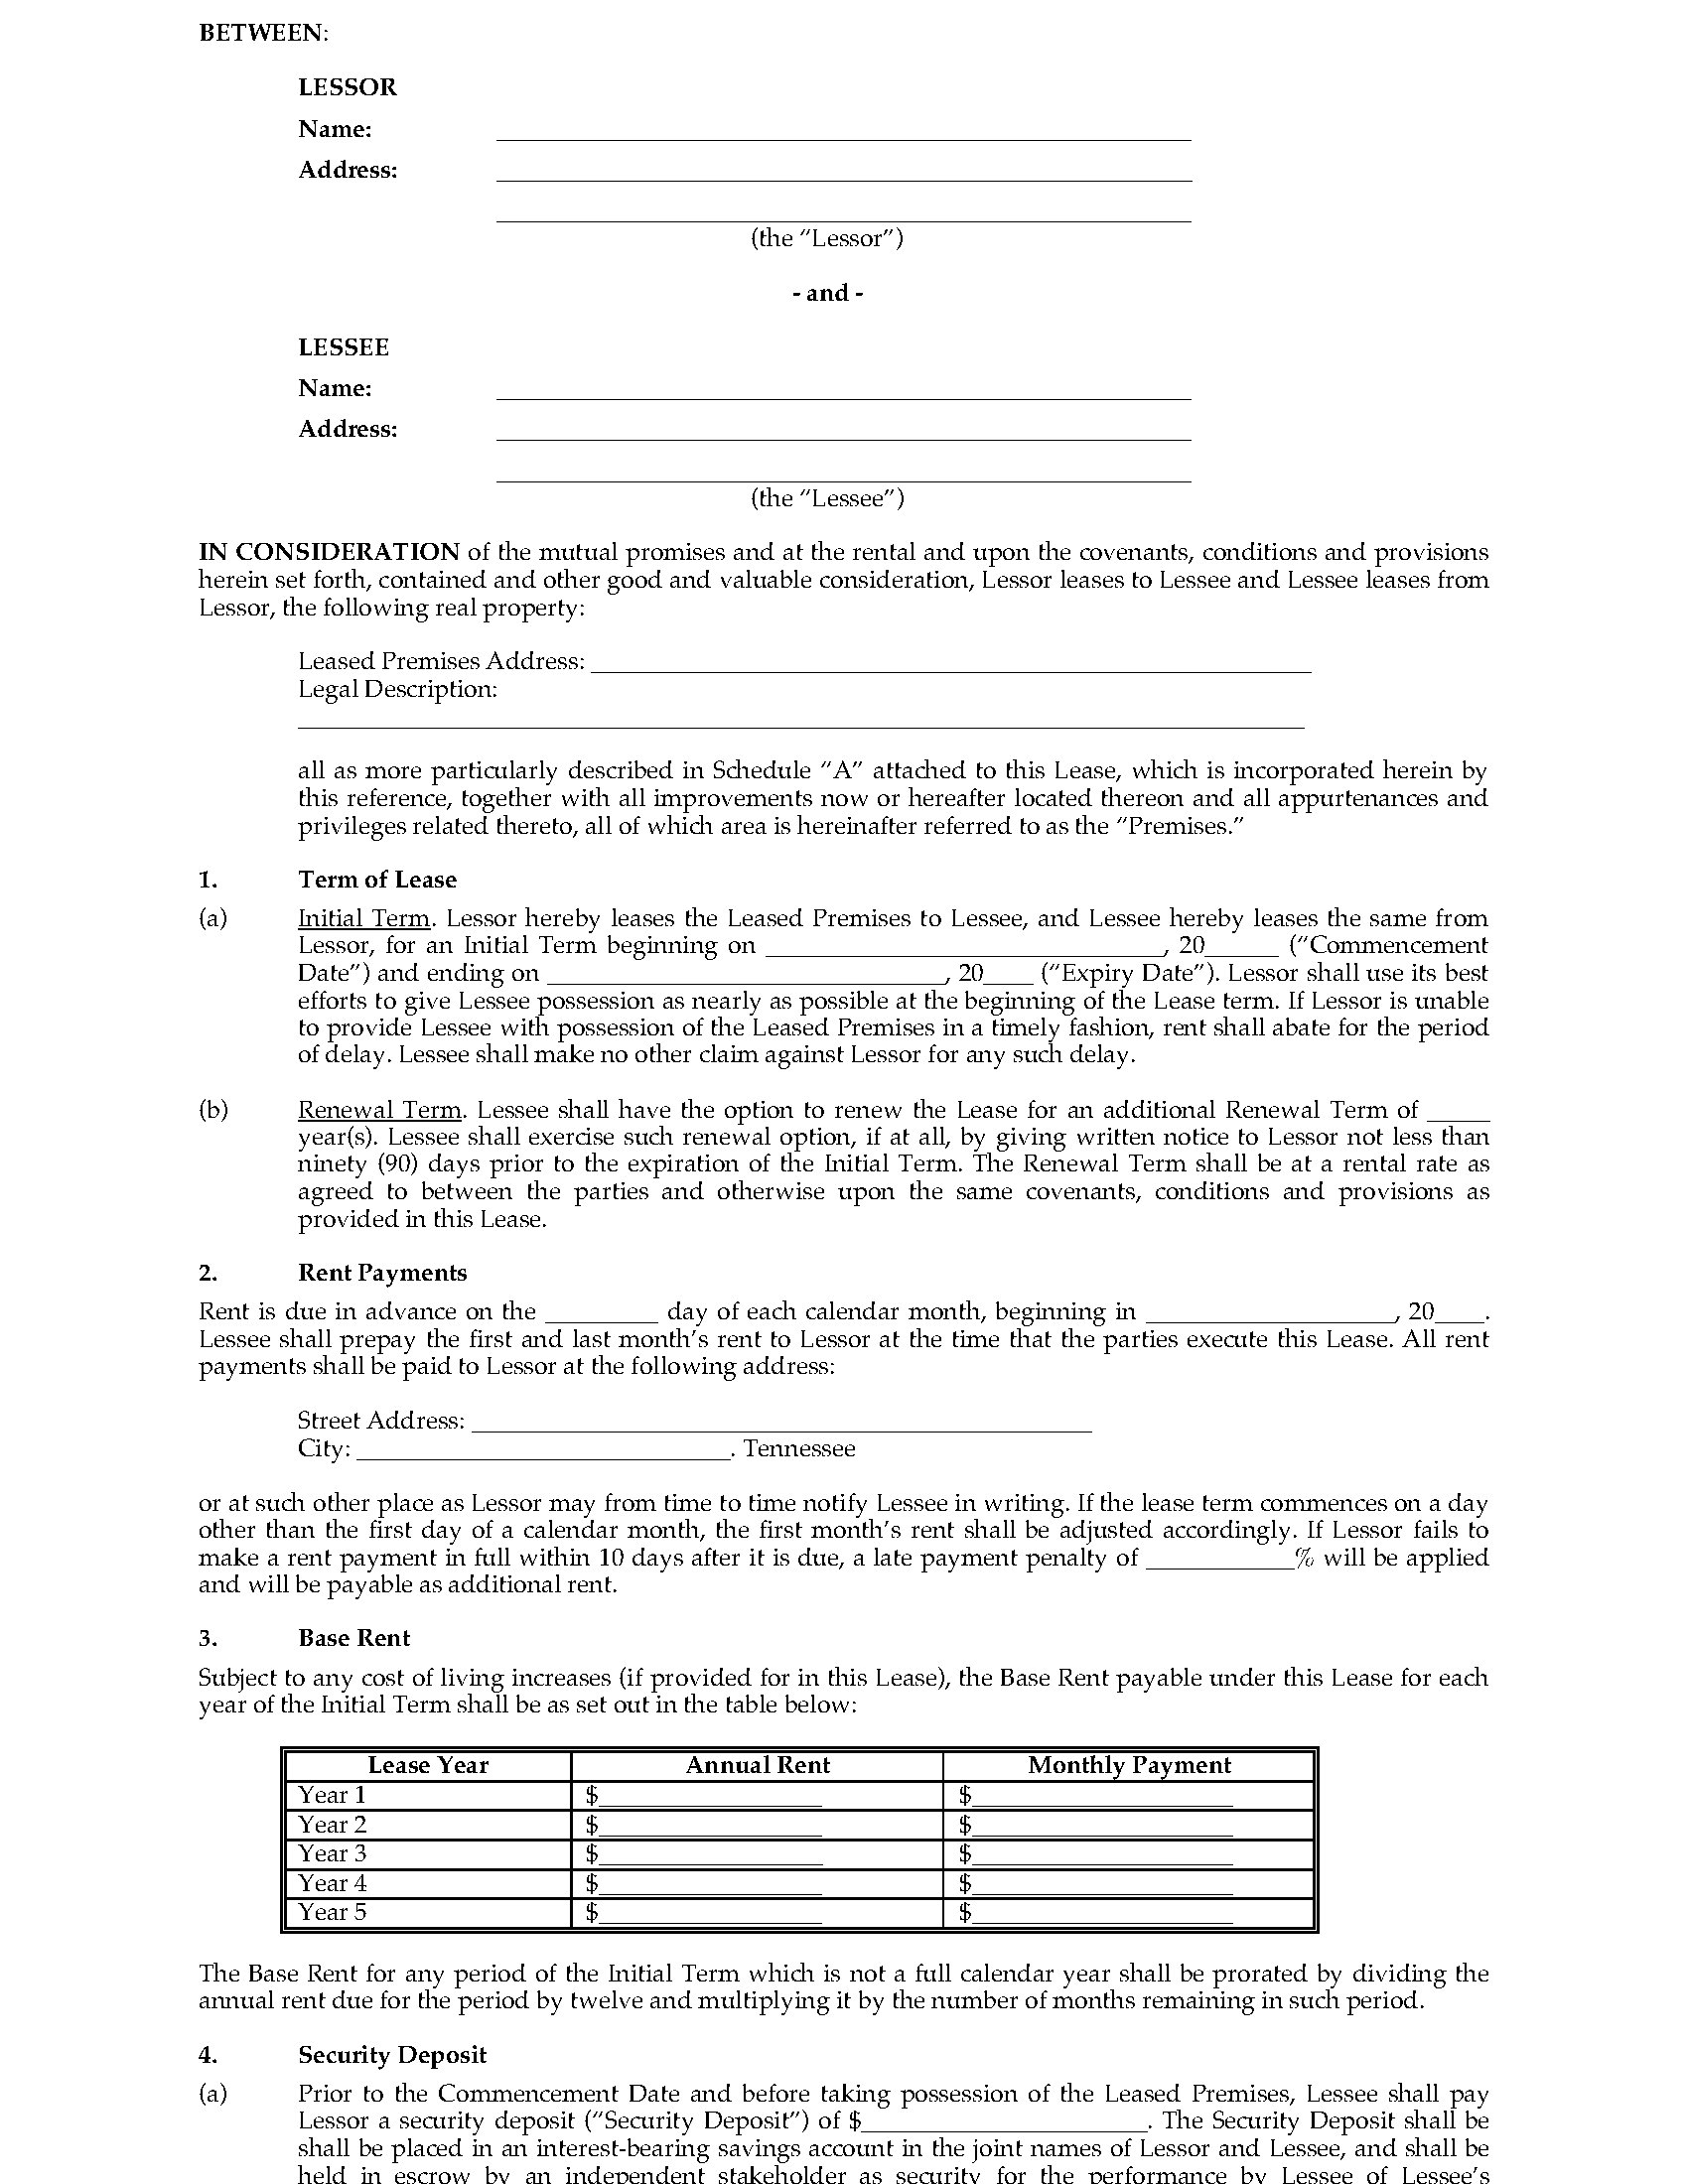 Tennessee commercial triple net lease agreement legal forms and picture of tennessee commercial triple net lease agreement platinumwayz